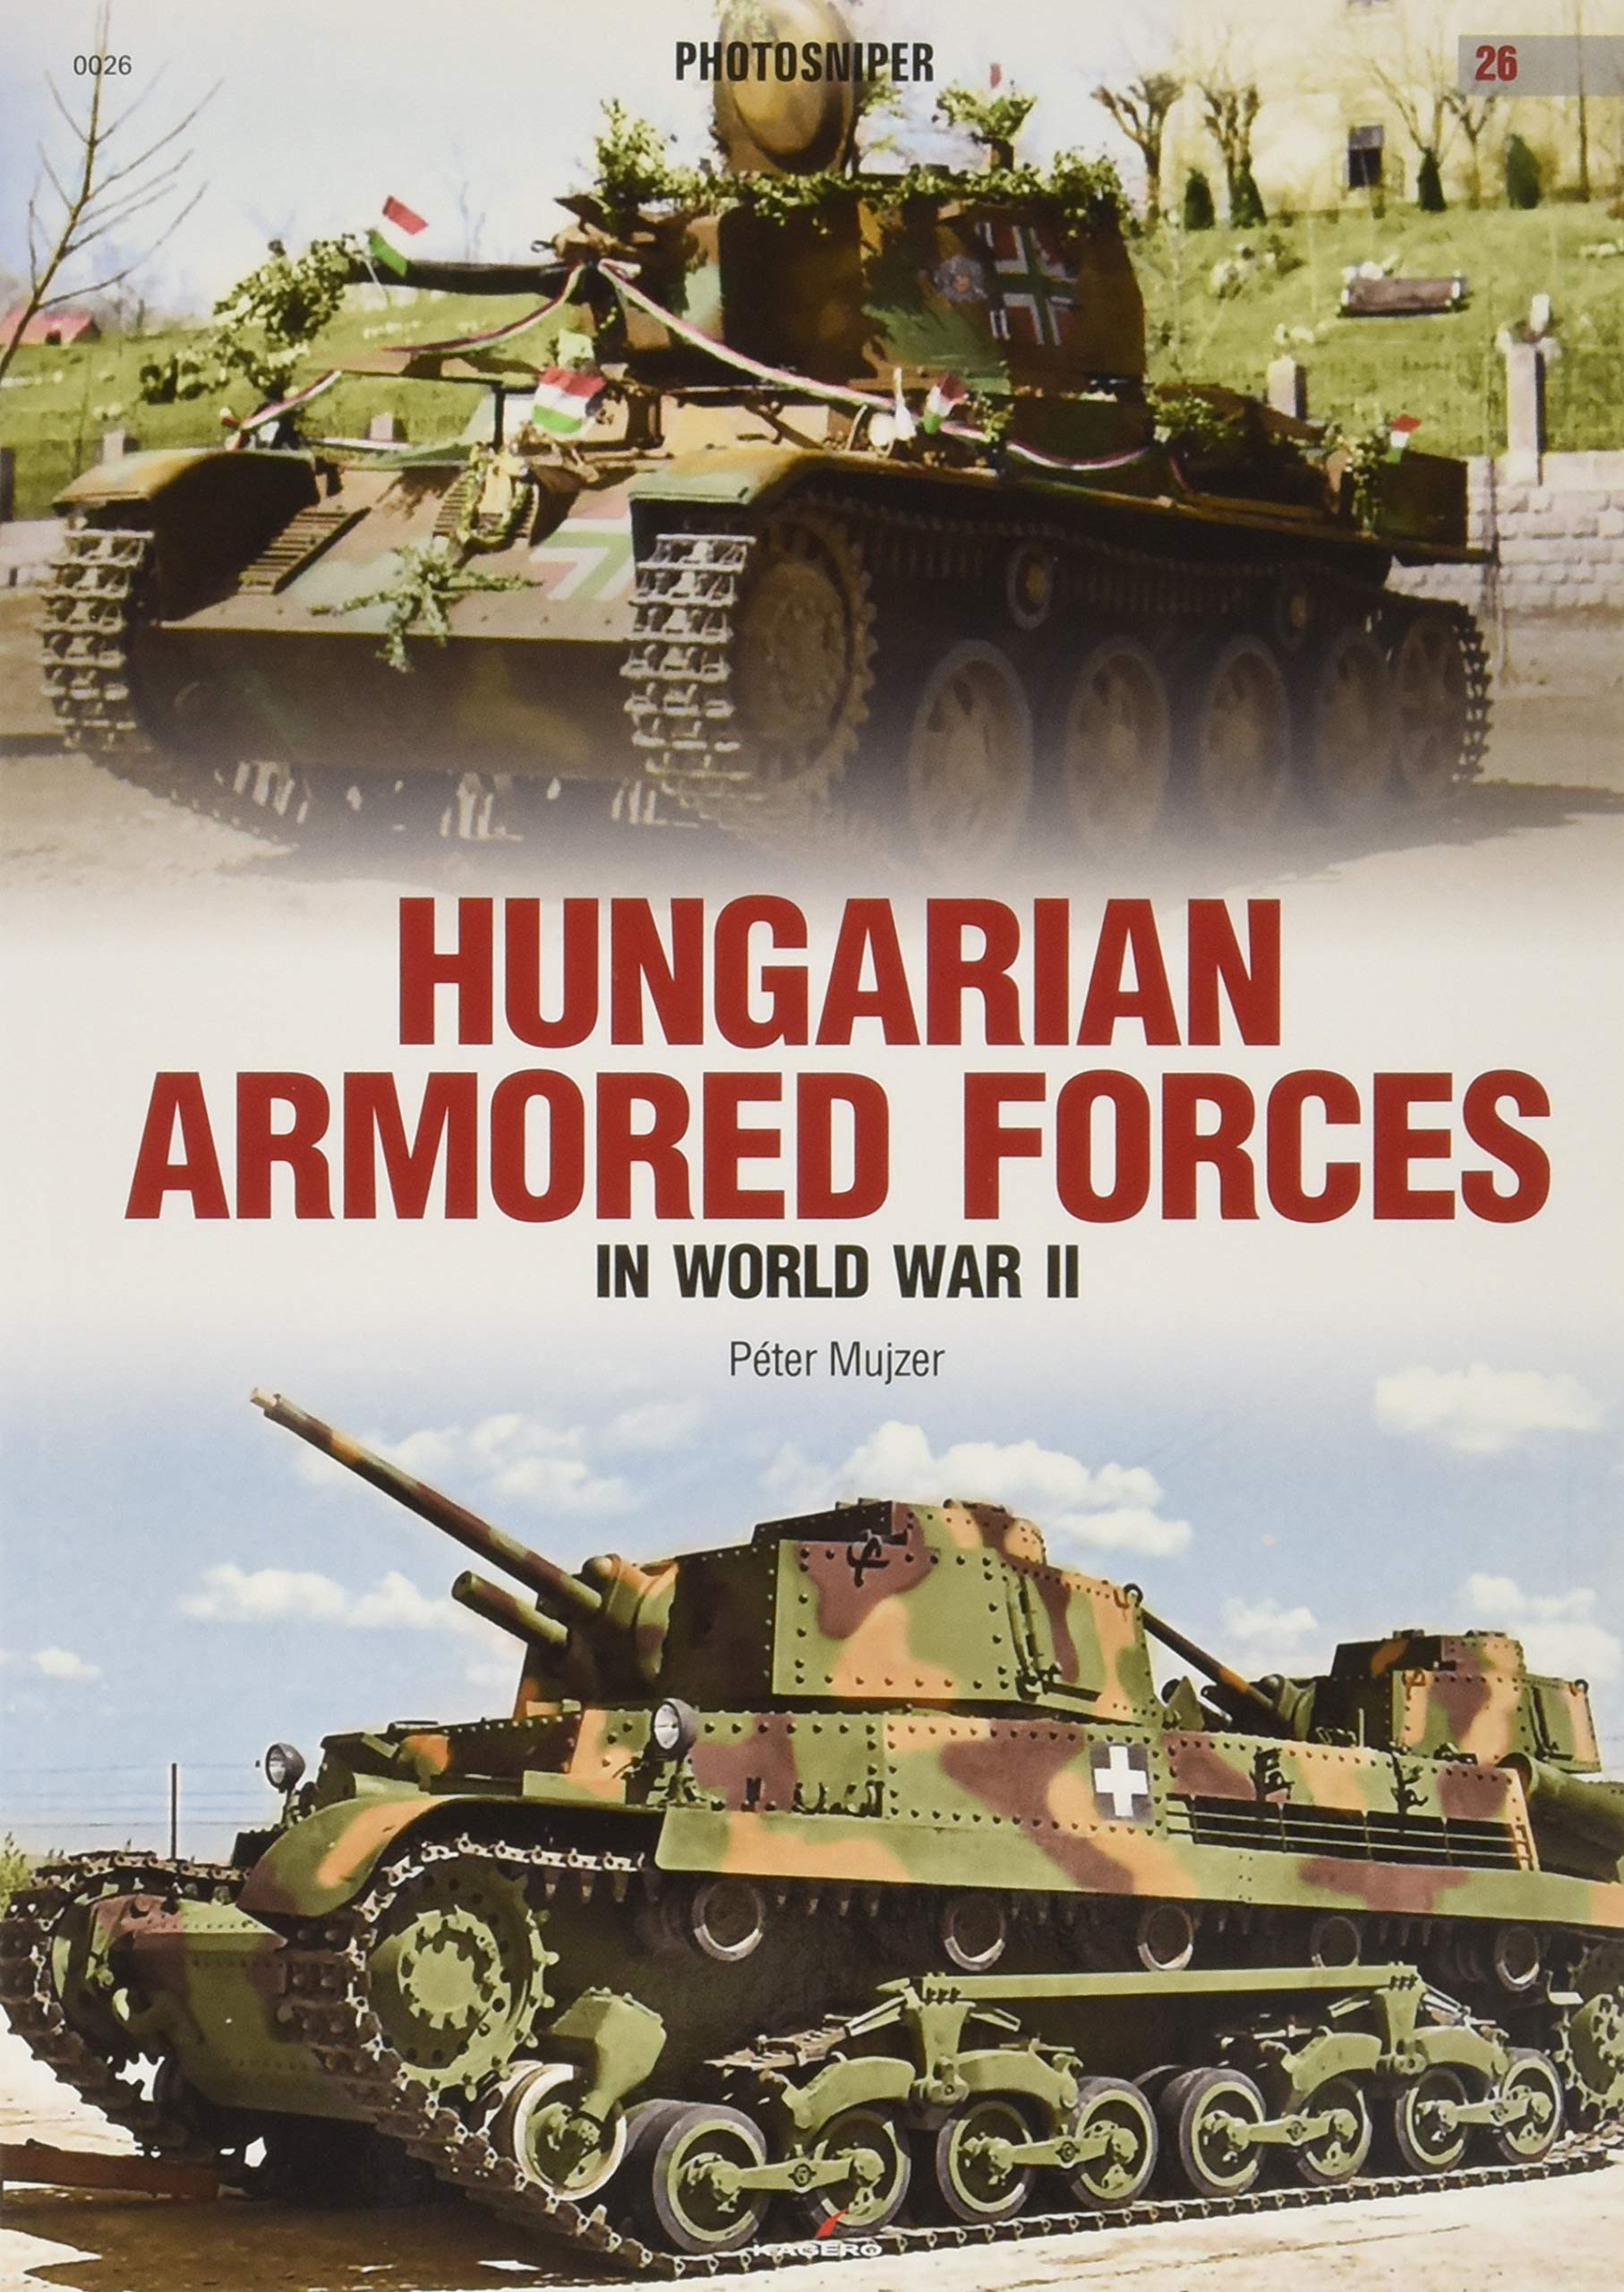 Hungarian Armored Forces in World War II (Photosniper Band 26)